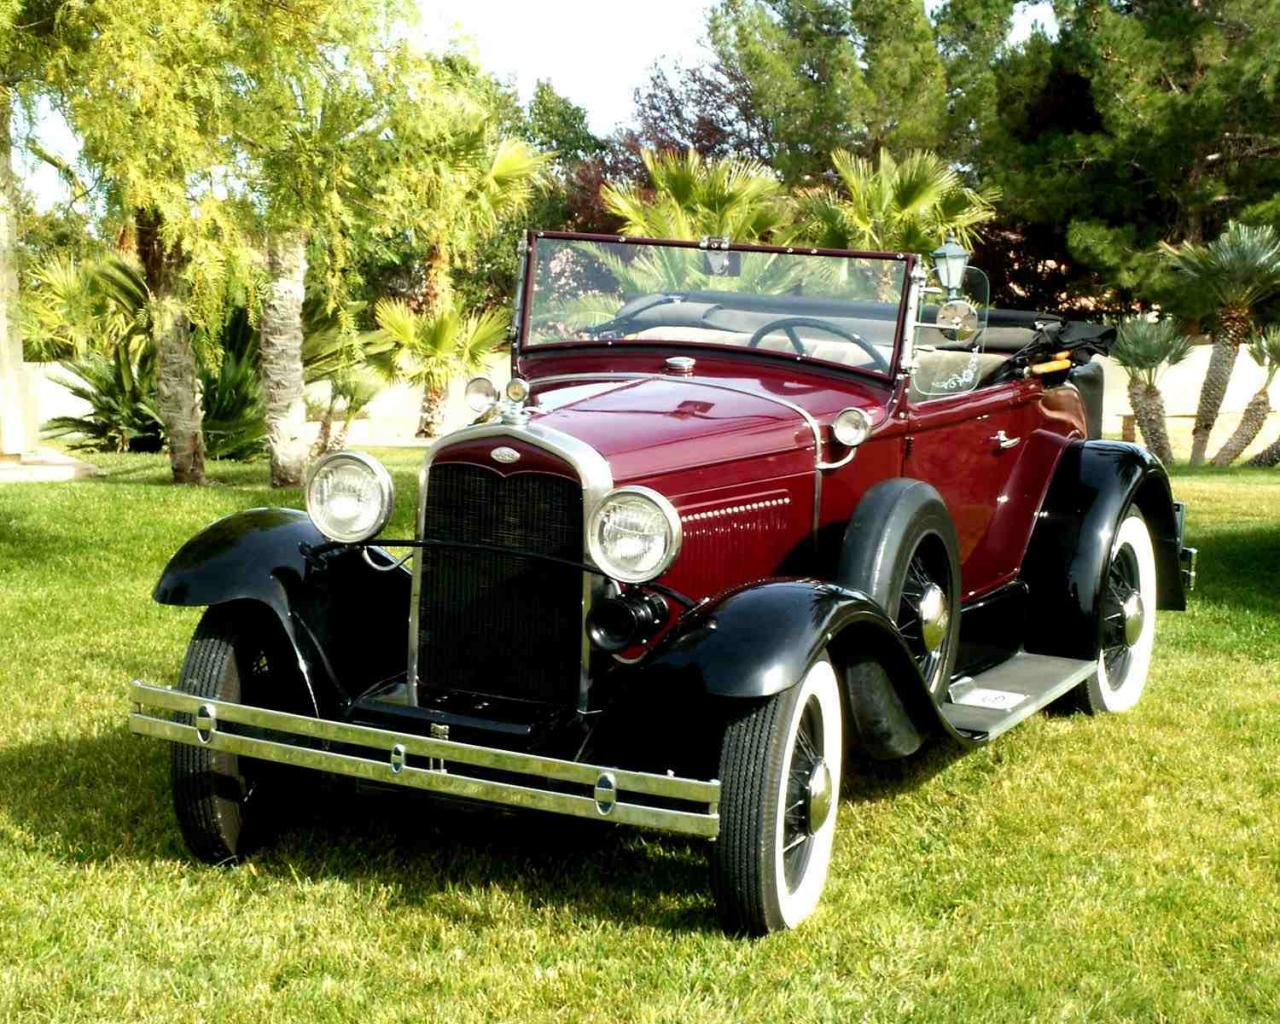 Model A Fords - Member's Cars